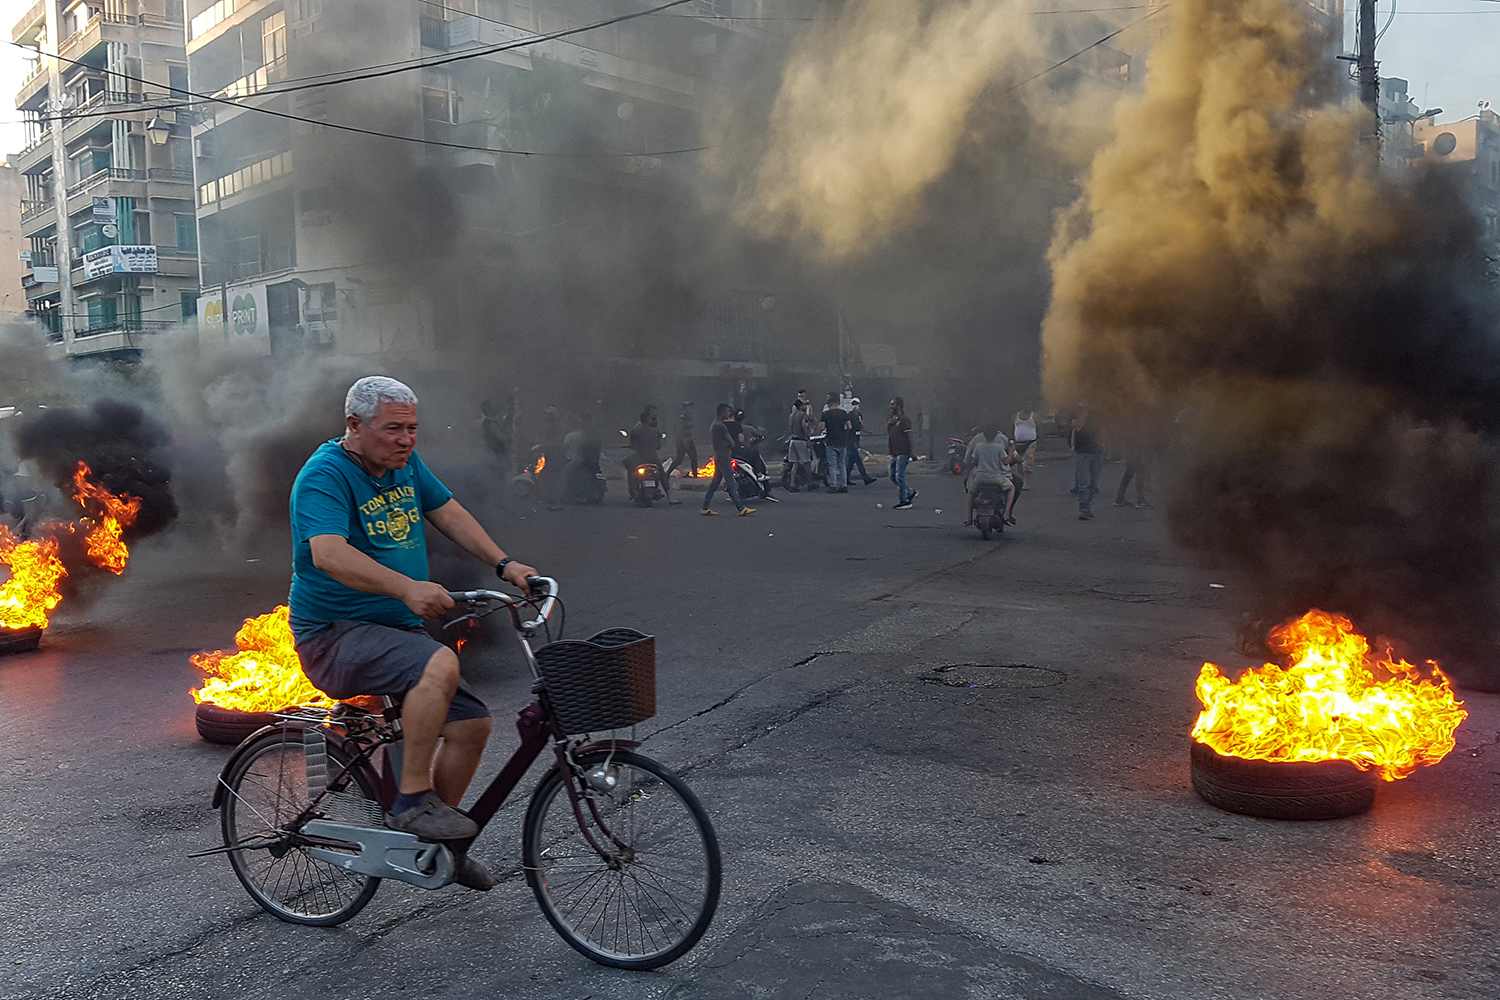 A man cycles past tires set aflame by protesters in Lebanon's northern city of Tripoli on June 11 as people take to the streets to demonstrate against dire economic conditions. FATHI AL-MASRI/AFP via Getty Images